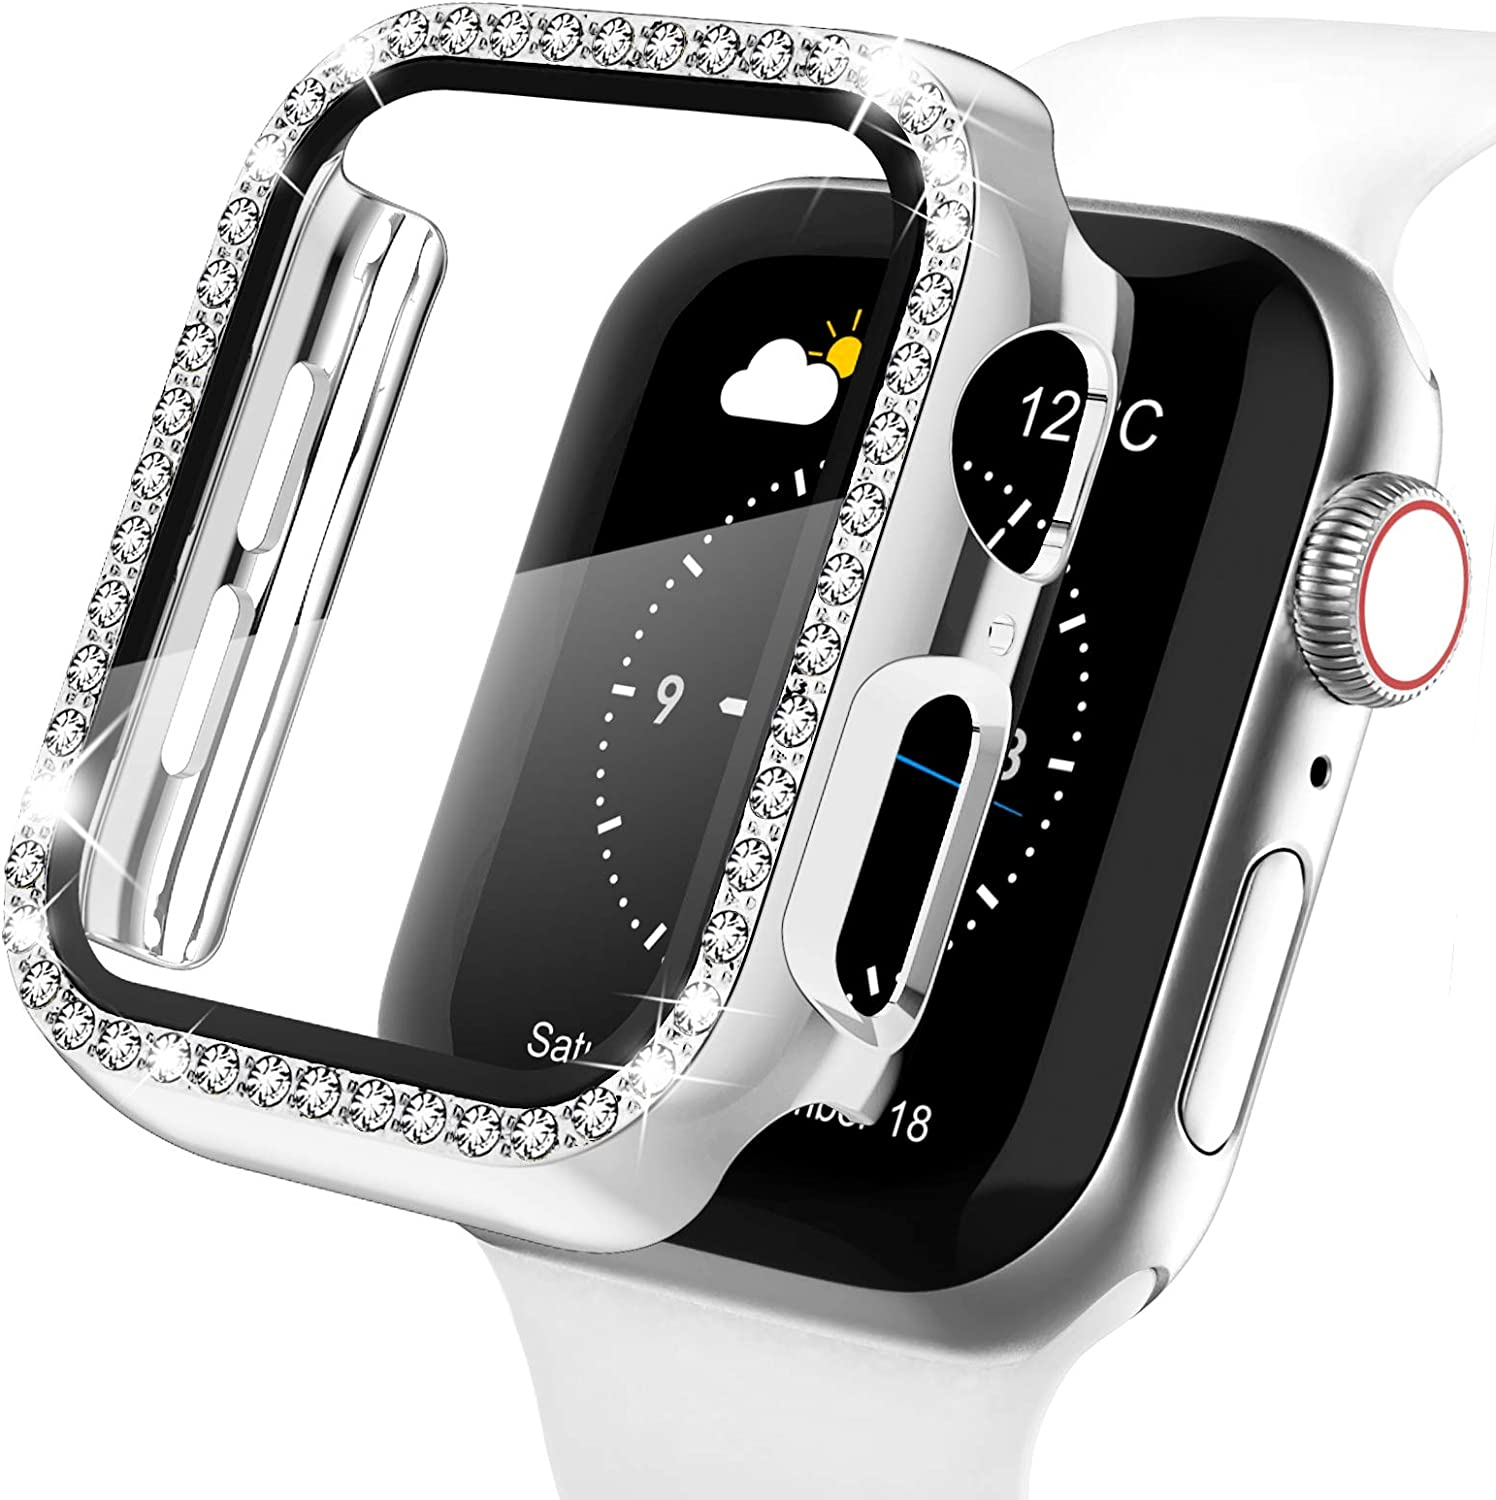 Recoppa Apple Watch Case with Screen Protector for Apple Watch 40mm Series 6/5/4/SE, Bling Crystal Diamond Rhinestone Ultra-Thin Bumper Full Cover Protective Case for Women Girls iWatch Silver